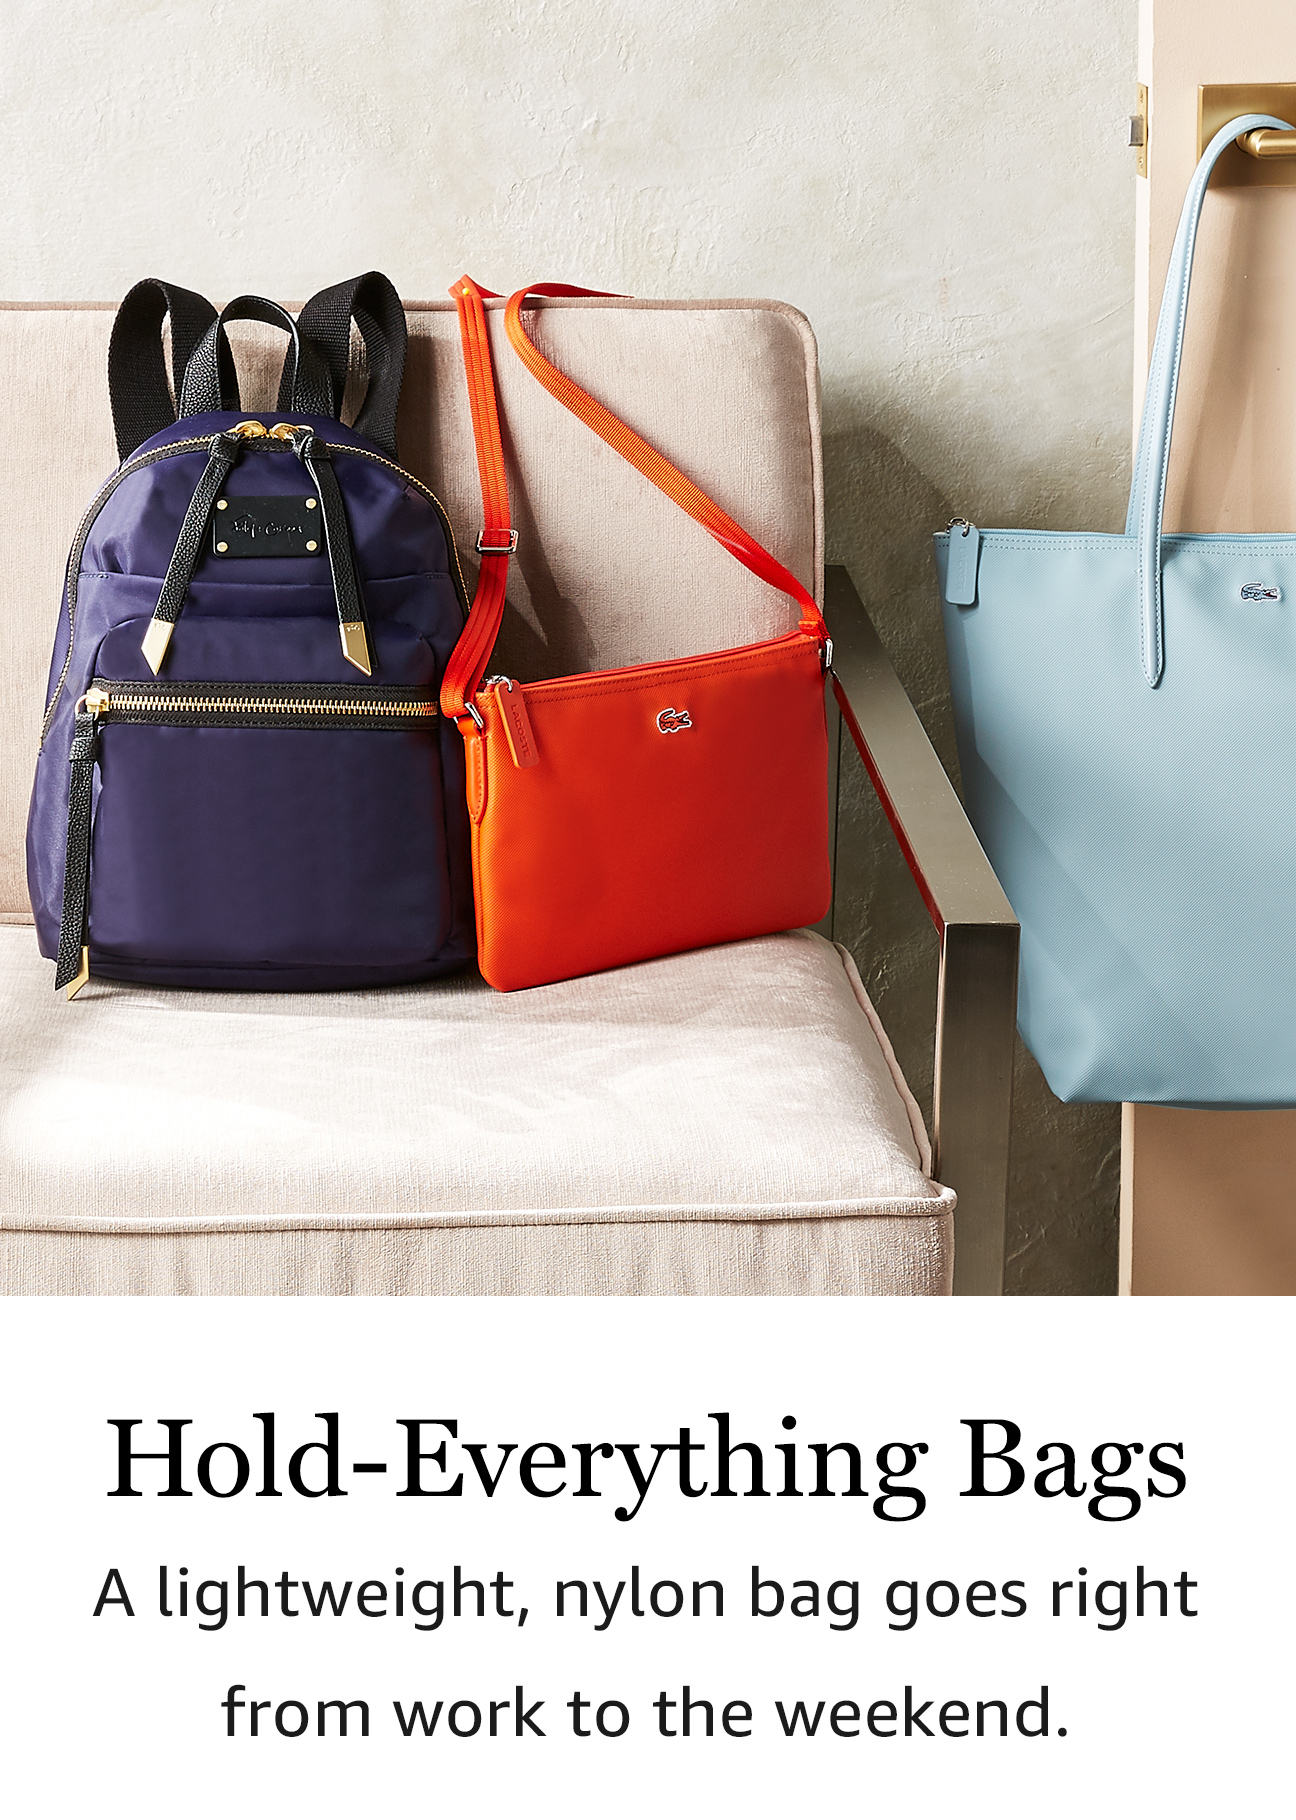 Hold-Everything Bags: A lightweight, nylong bag goes right from work to the weekend.